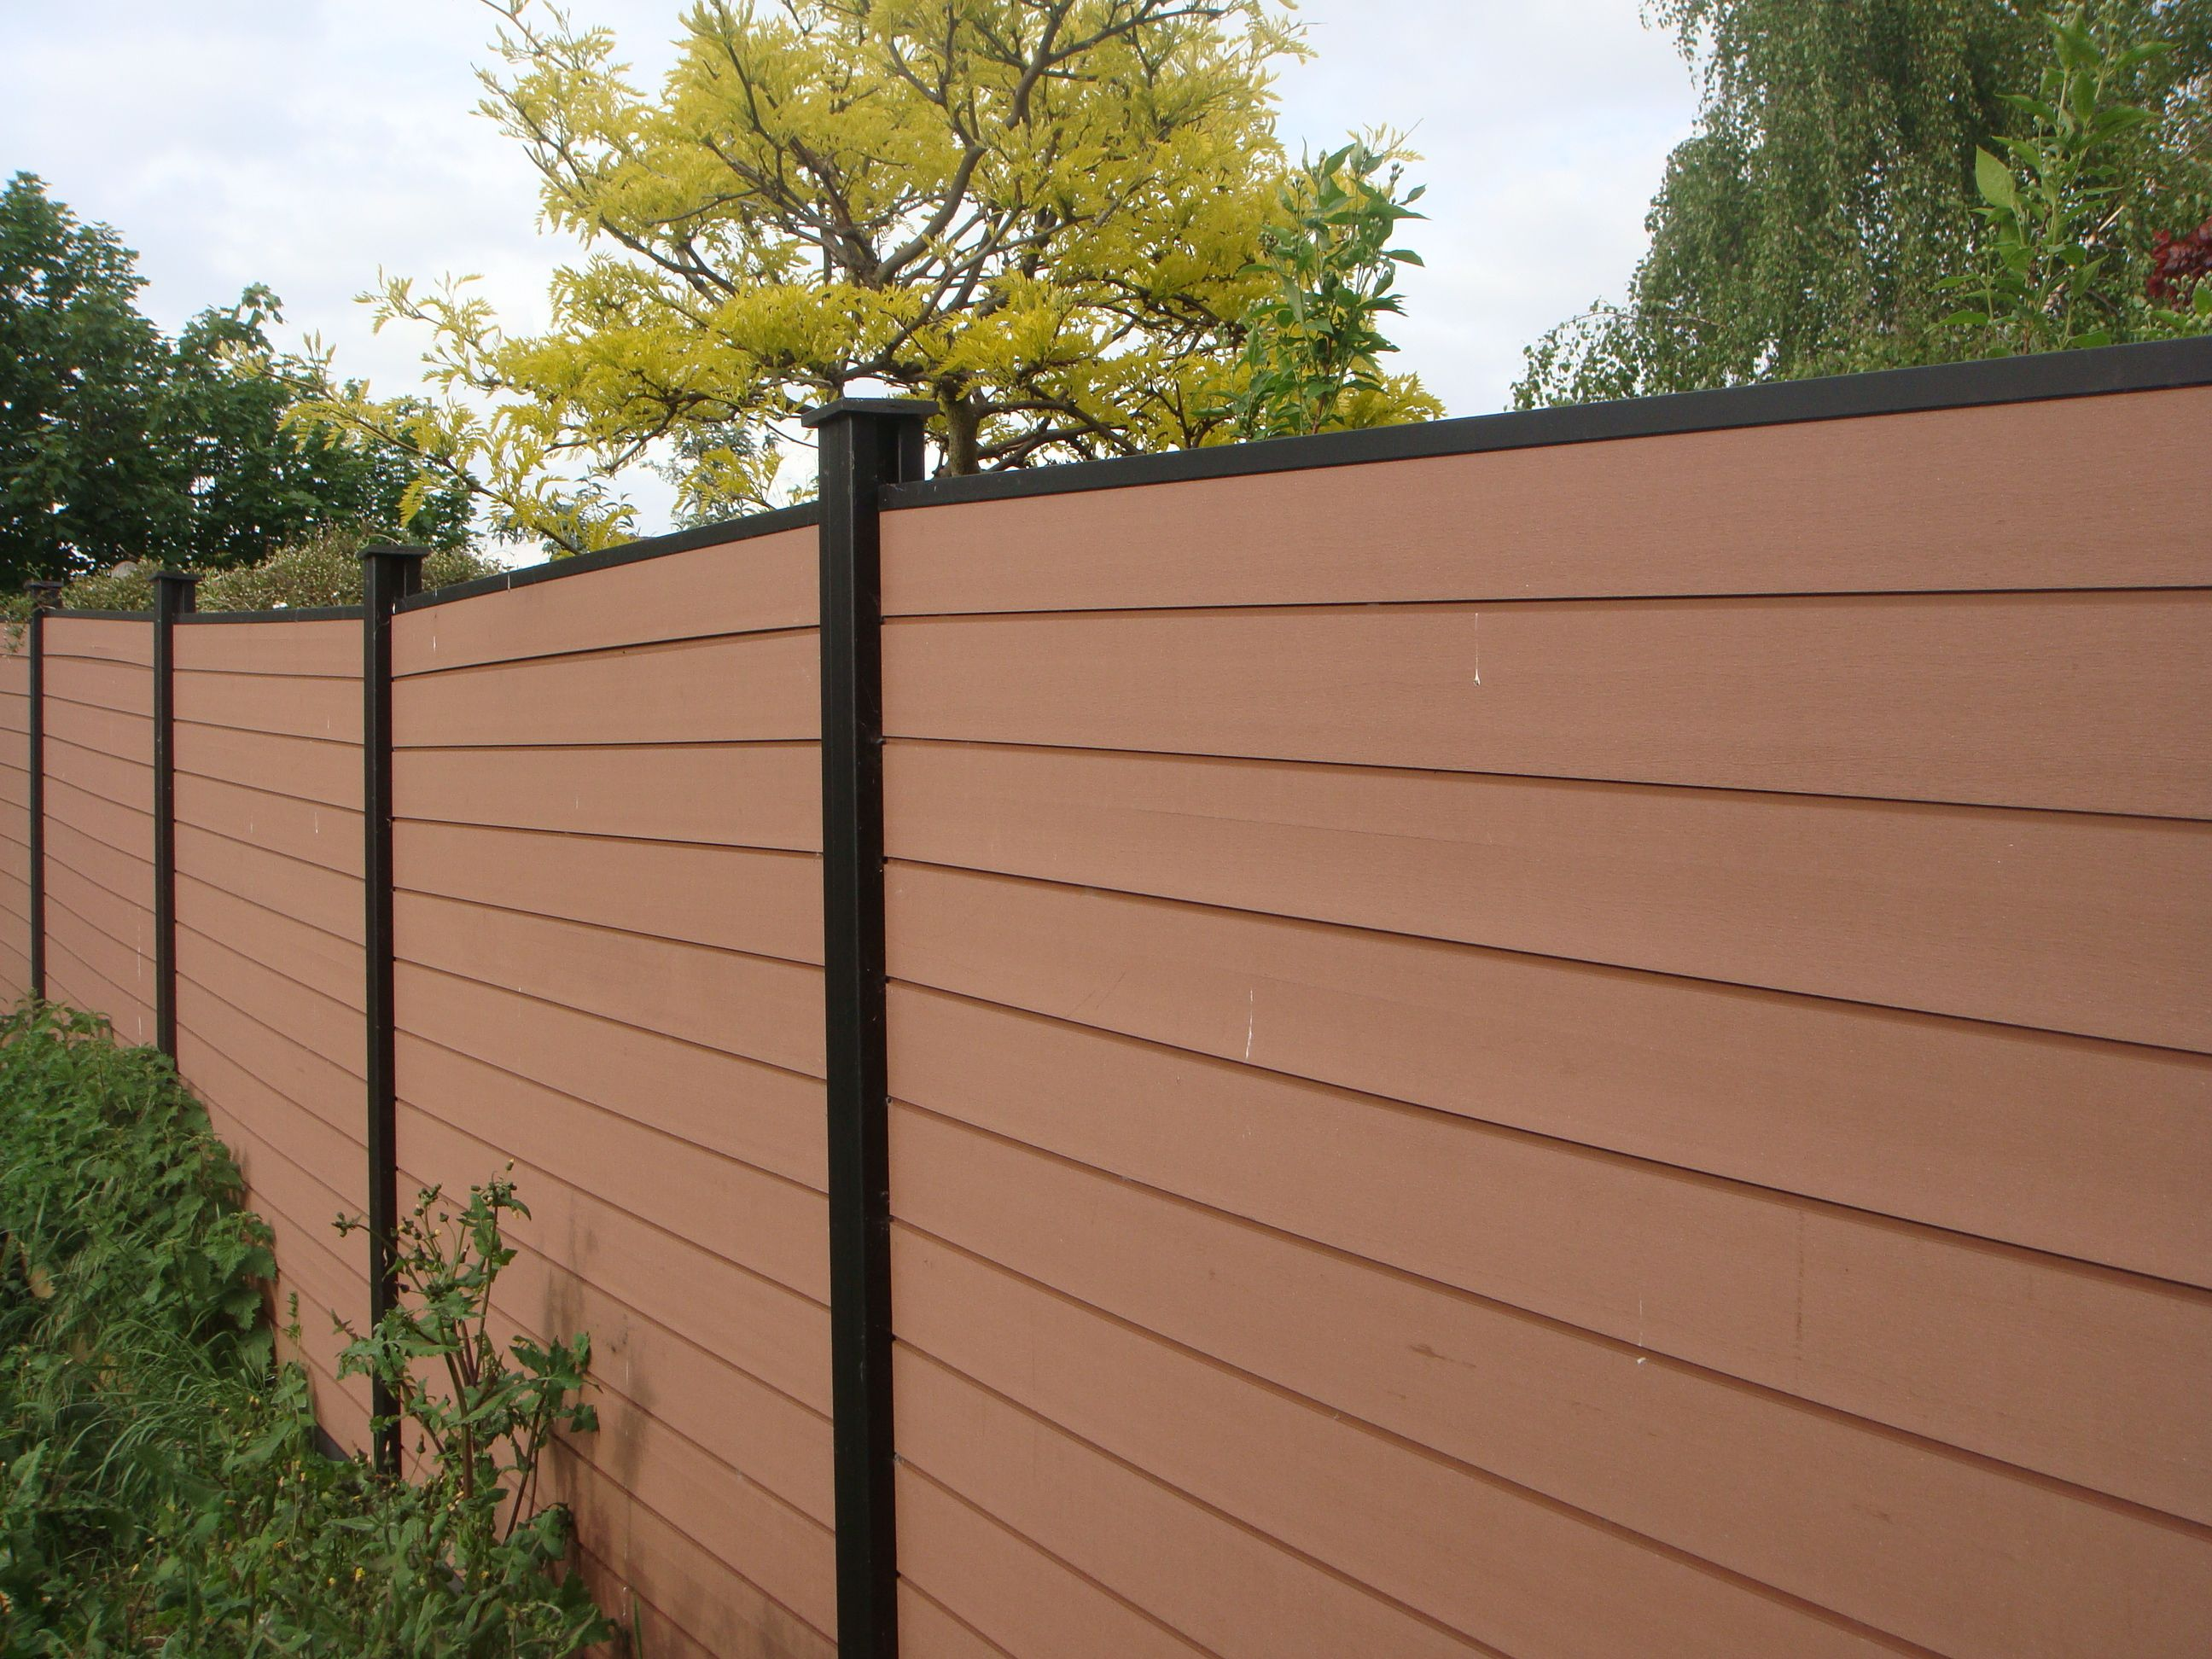 Gardens Fence Panels For Countryside Wood Plastic Fence